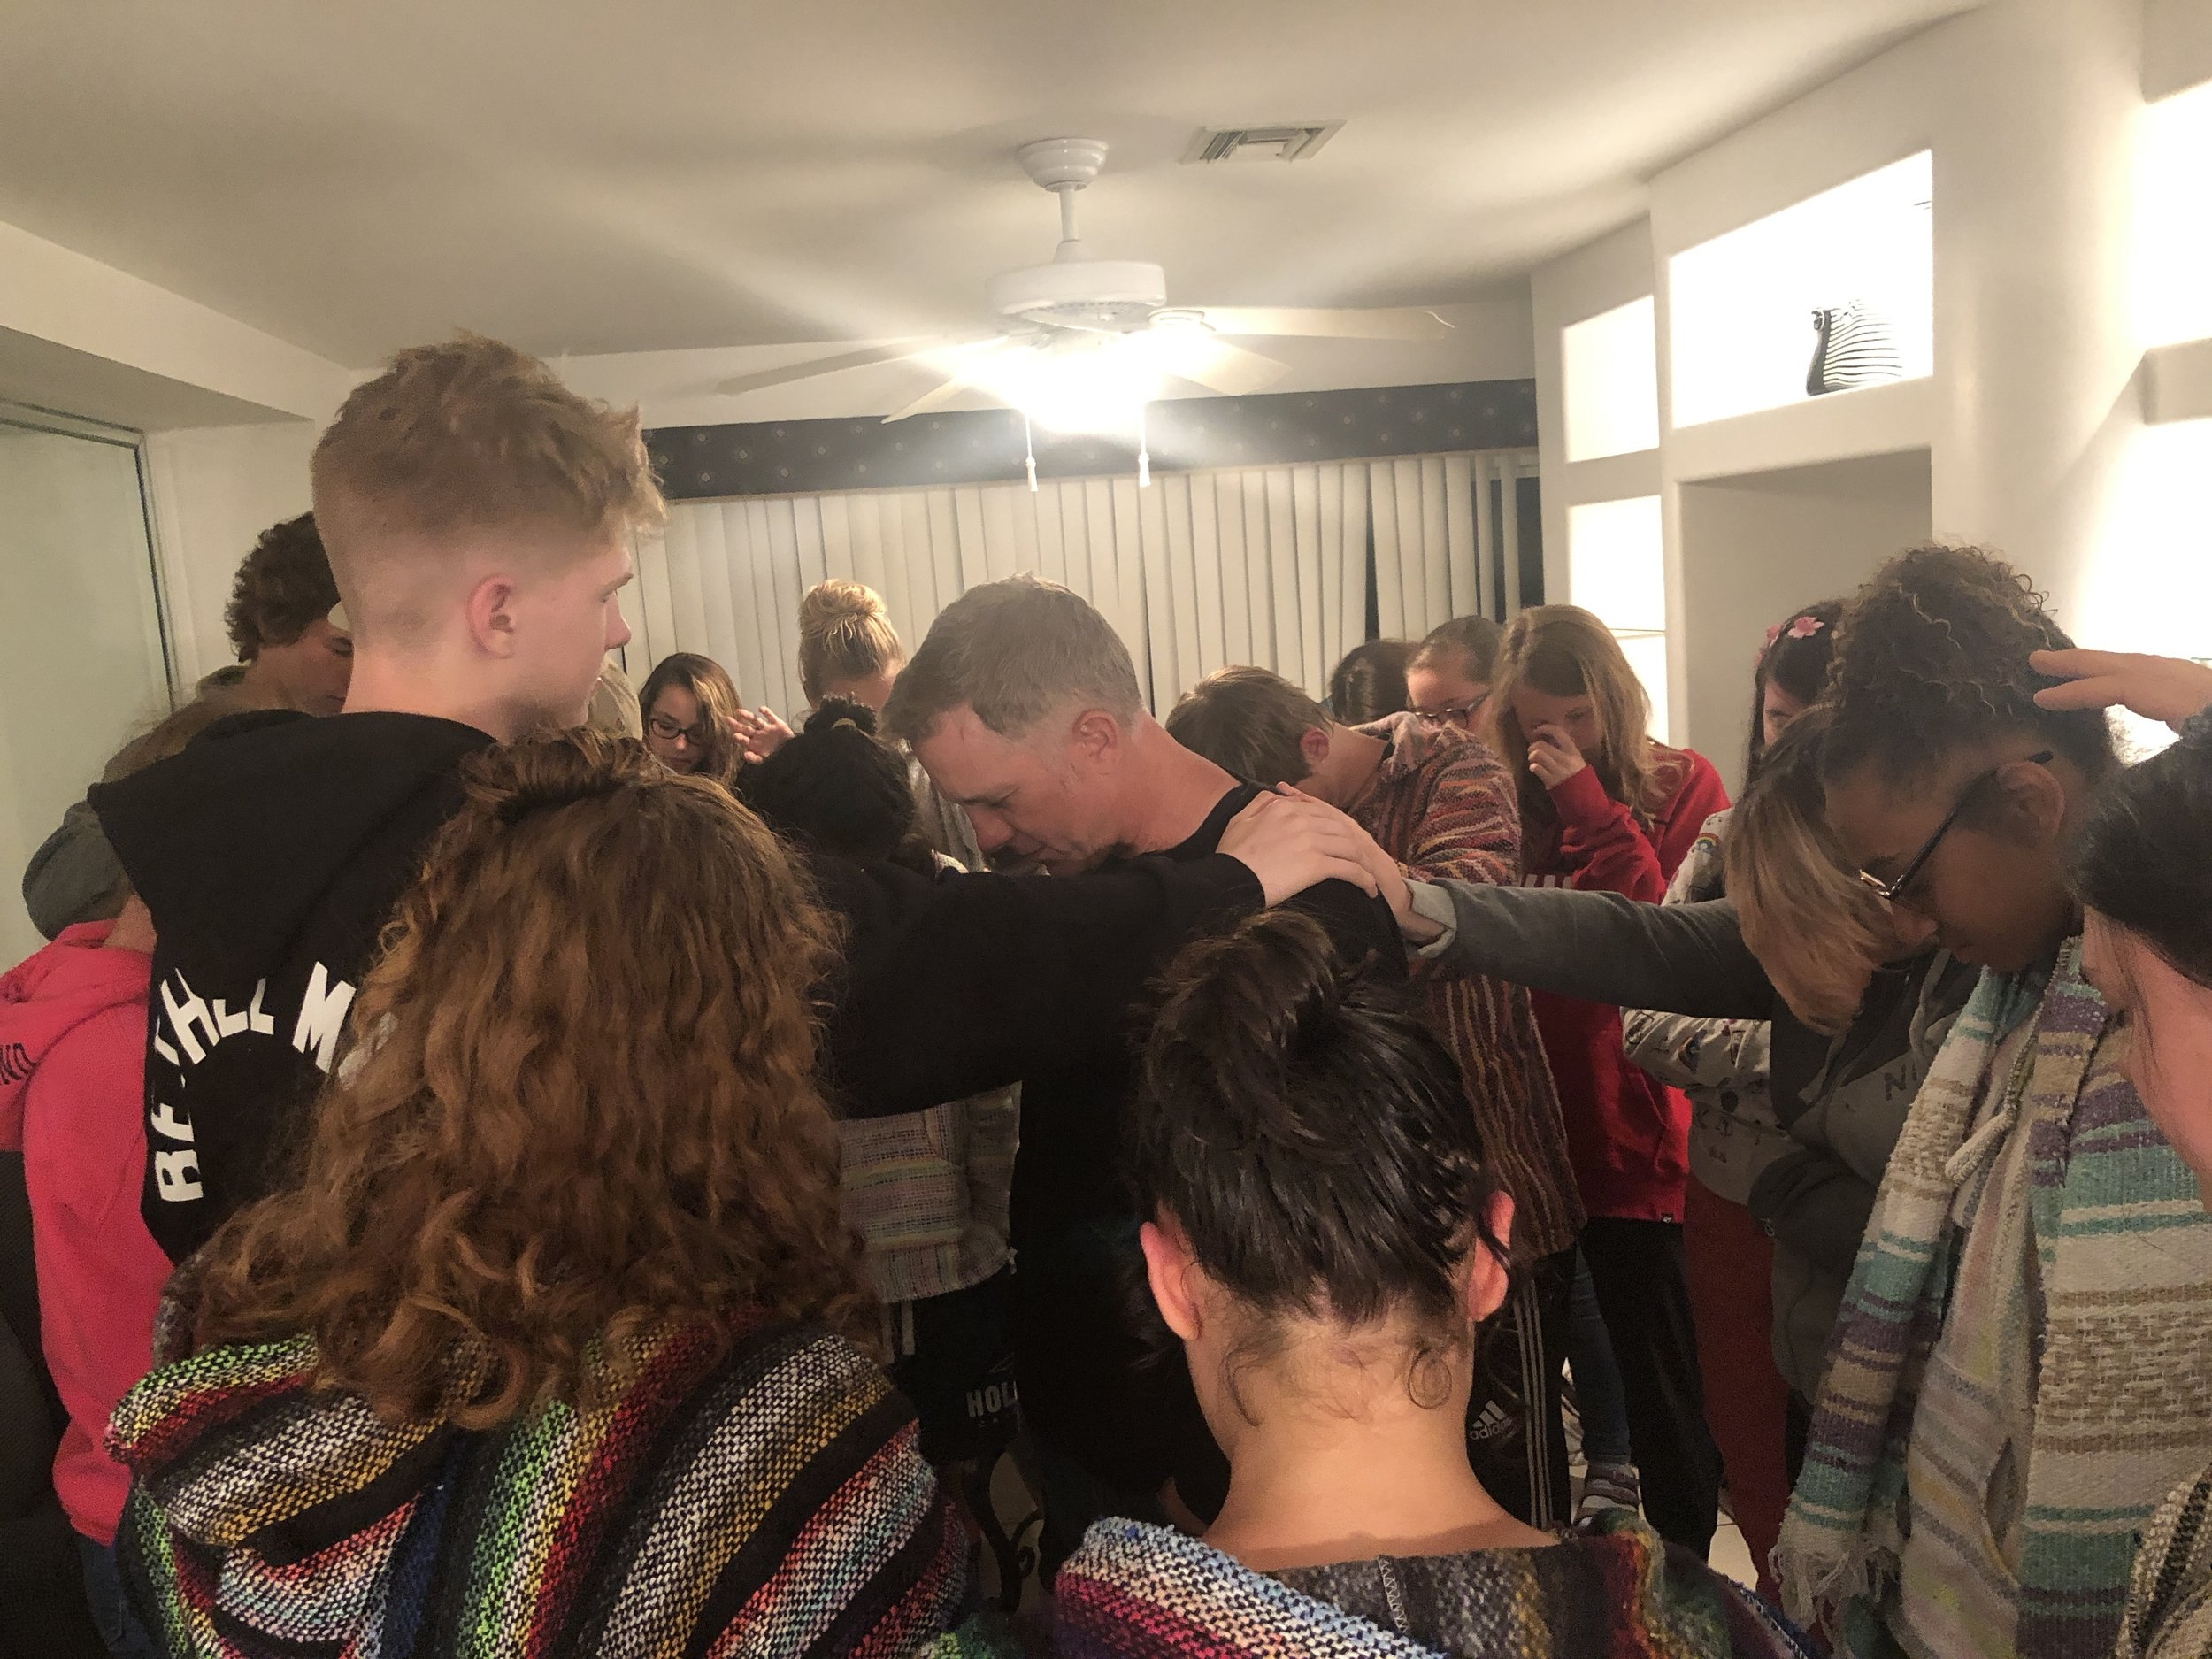 Praying over Pastor Brent as he will be leaving early in the morning to head home to be back for IFC on Sunday. He will be driving to cross the border at 8am EST. Please pray for him.